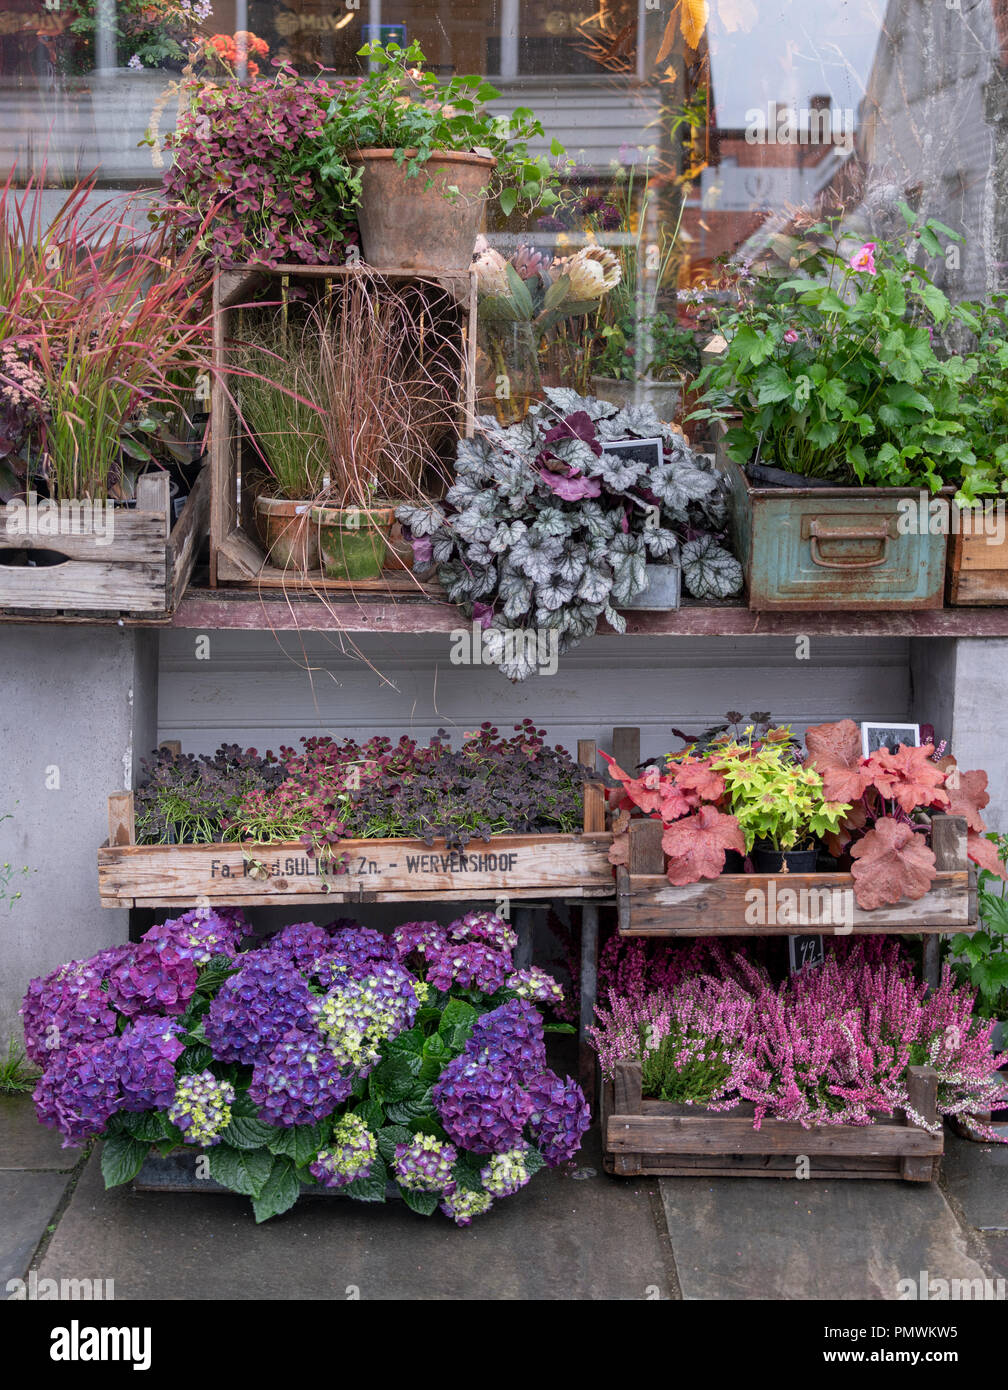 Autumn Plants And Flowers For Sale Outside Florist Shop In